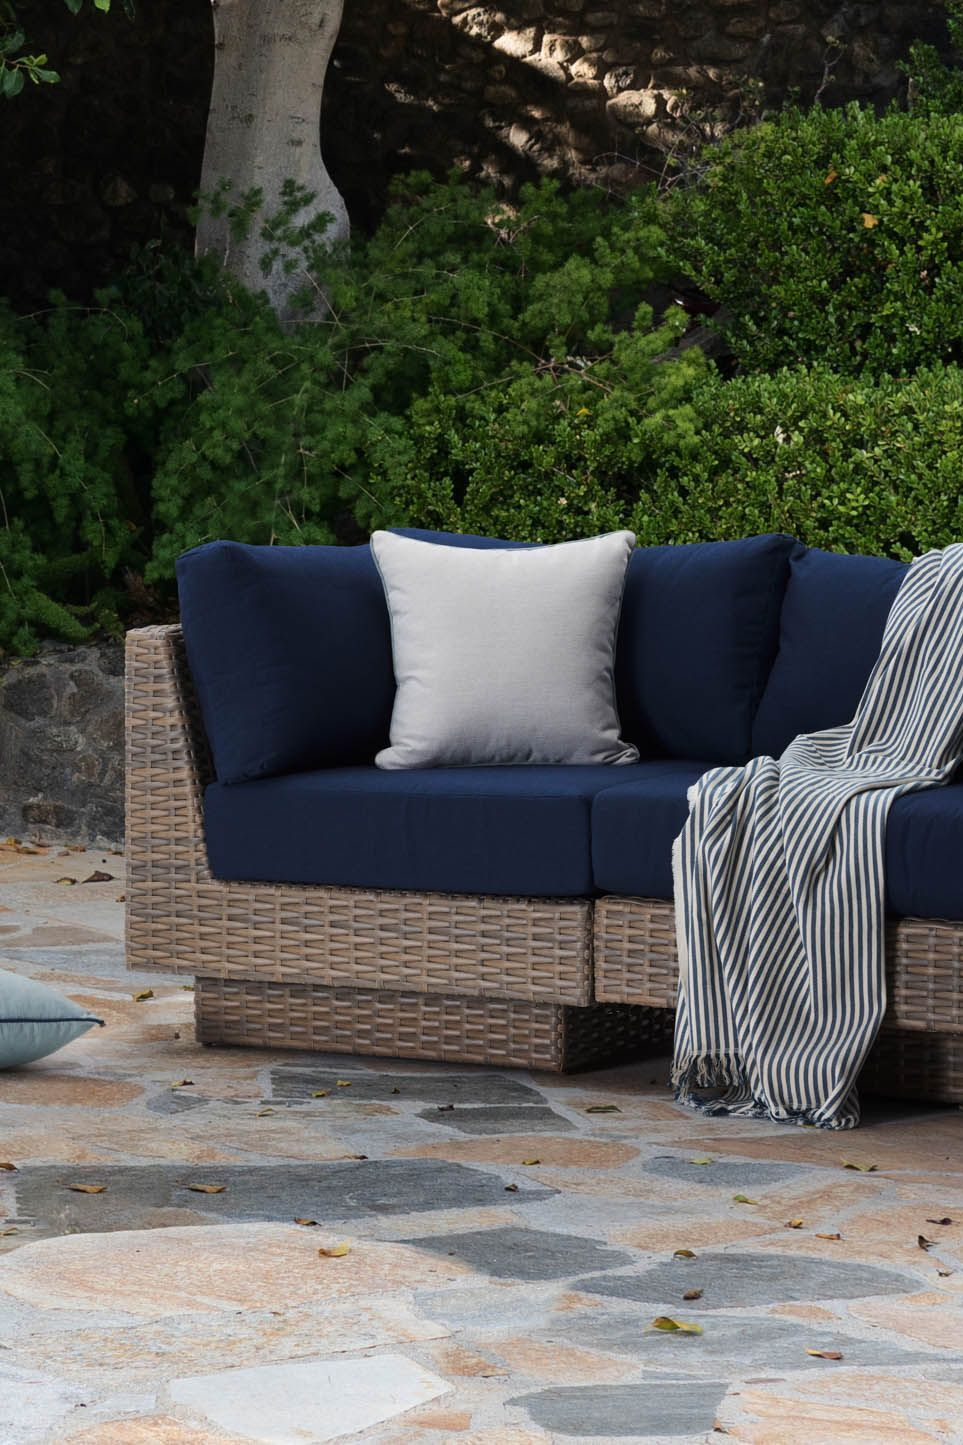 Patio Furniture Wicker Blue Navy Seating Set Repose Collection Rst Brands Luxury Outdoor Furniture Patio Cushions Backyard Patio Design